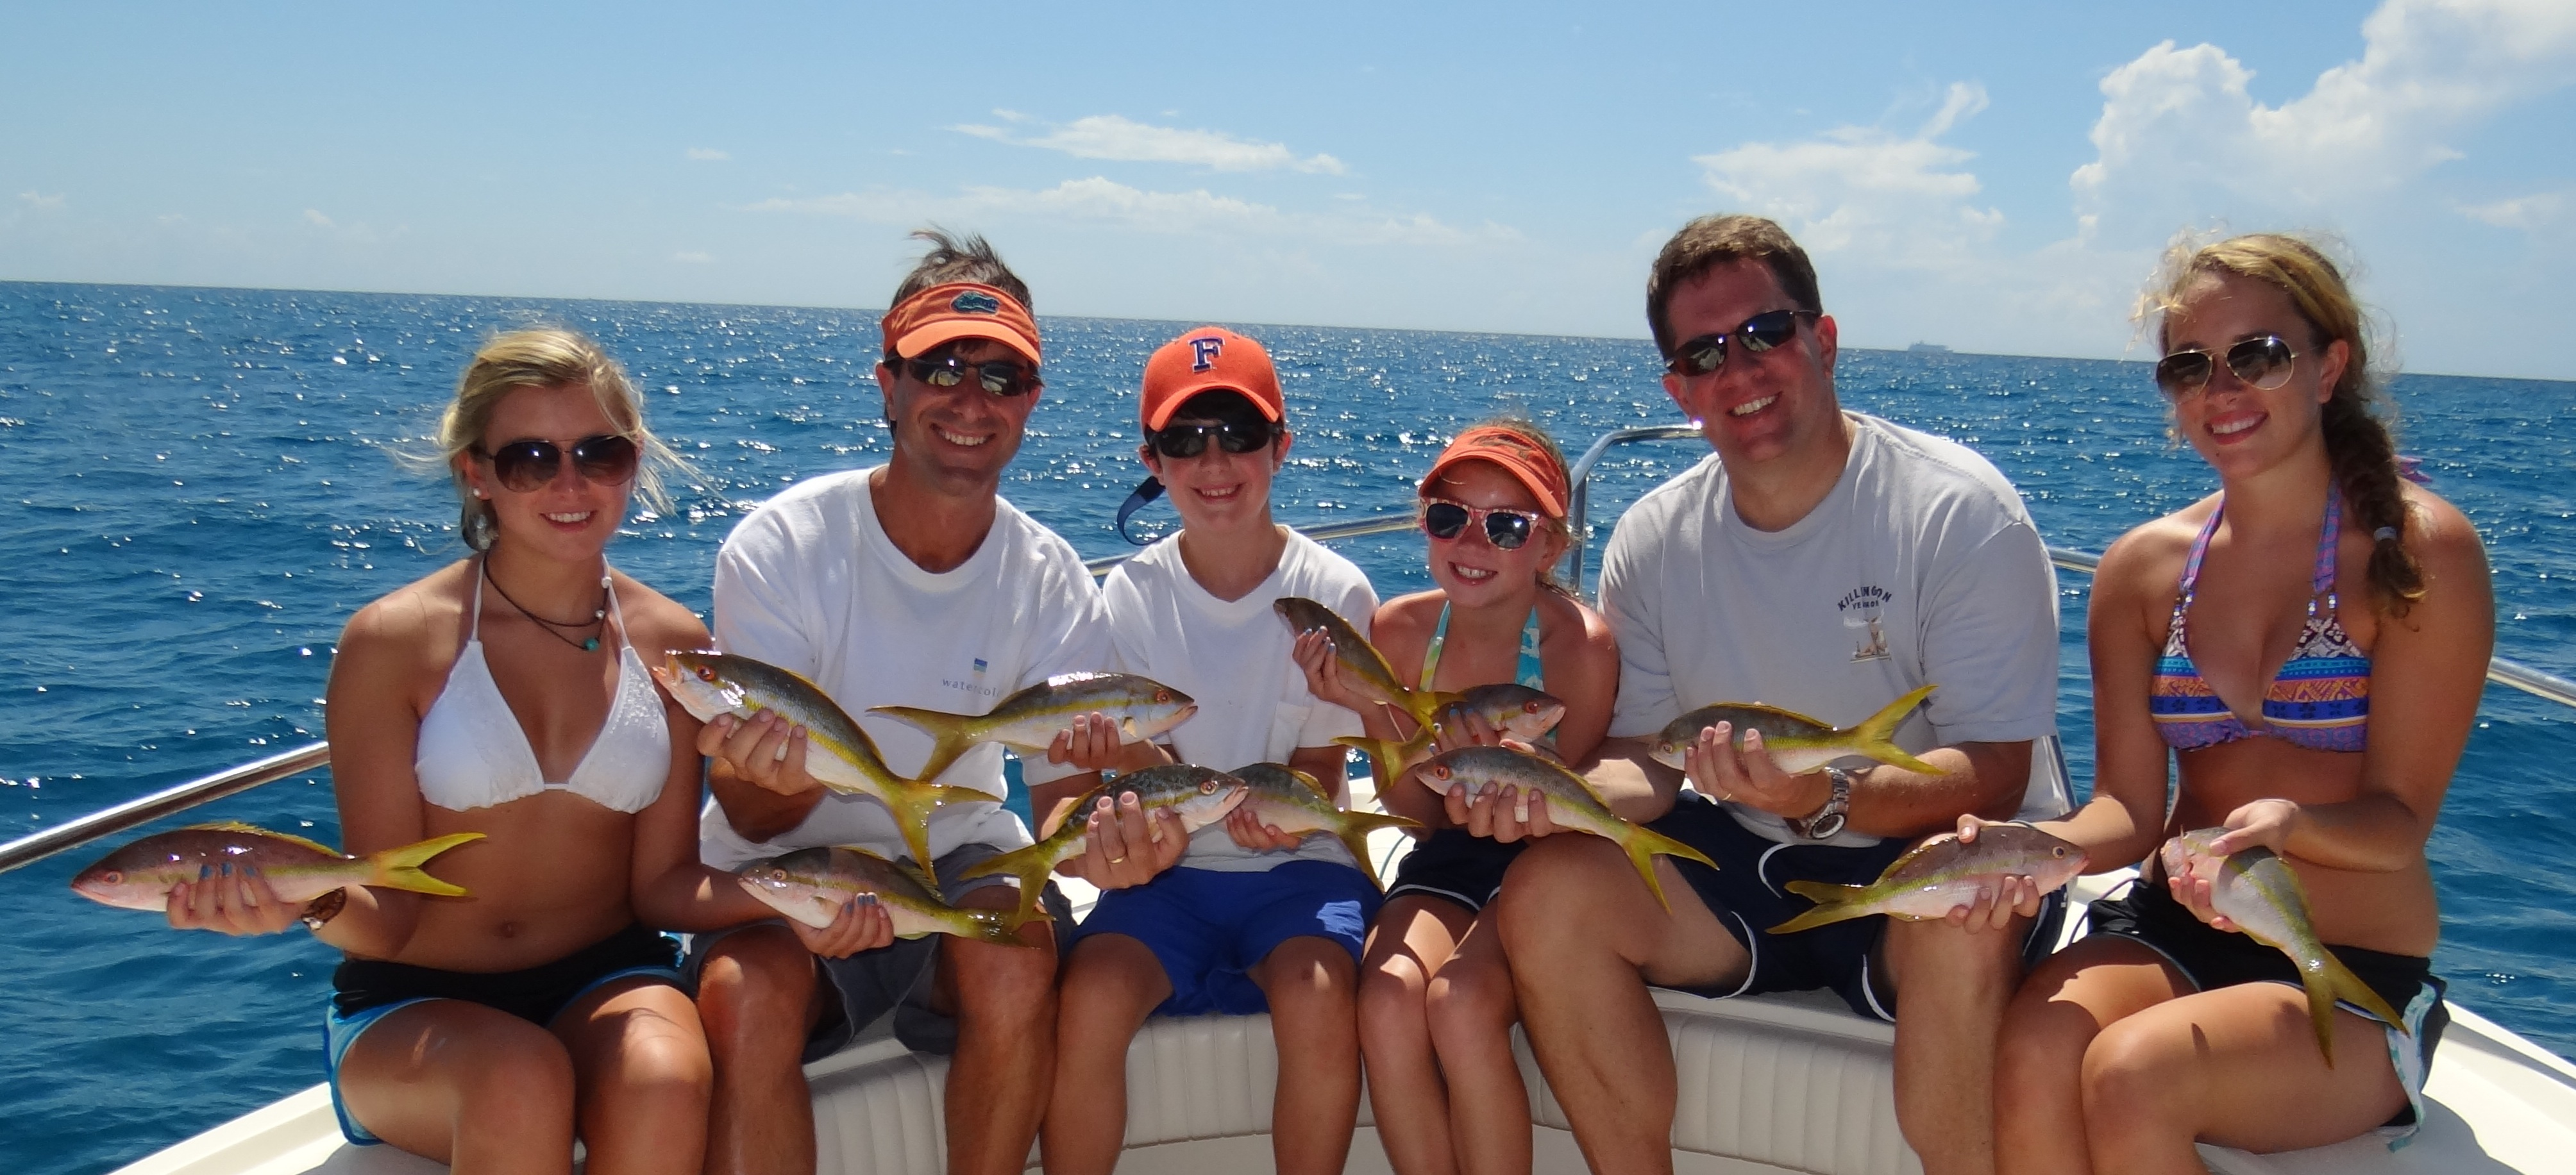 Patch reefs seasquared charters for Fishing resorts in florida